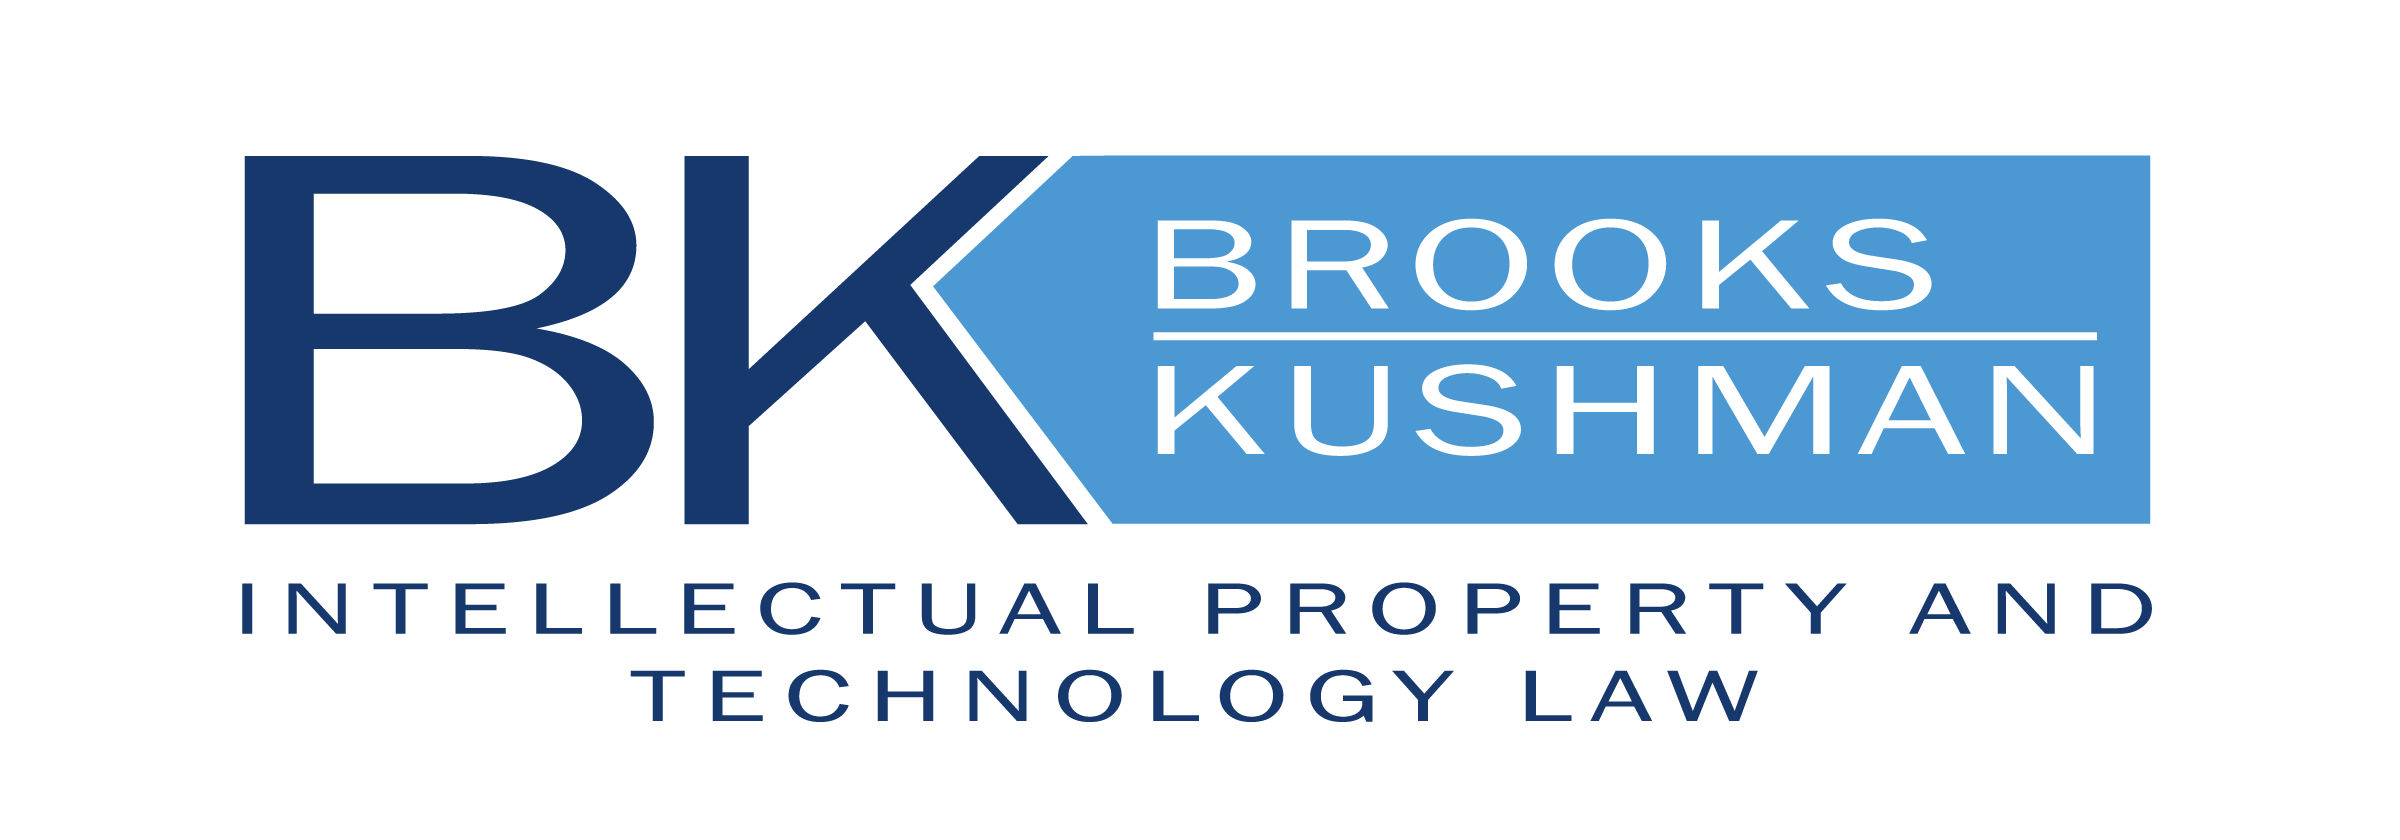 Brooks Kushman Law Firm logo